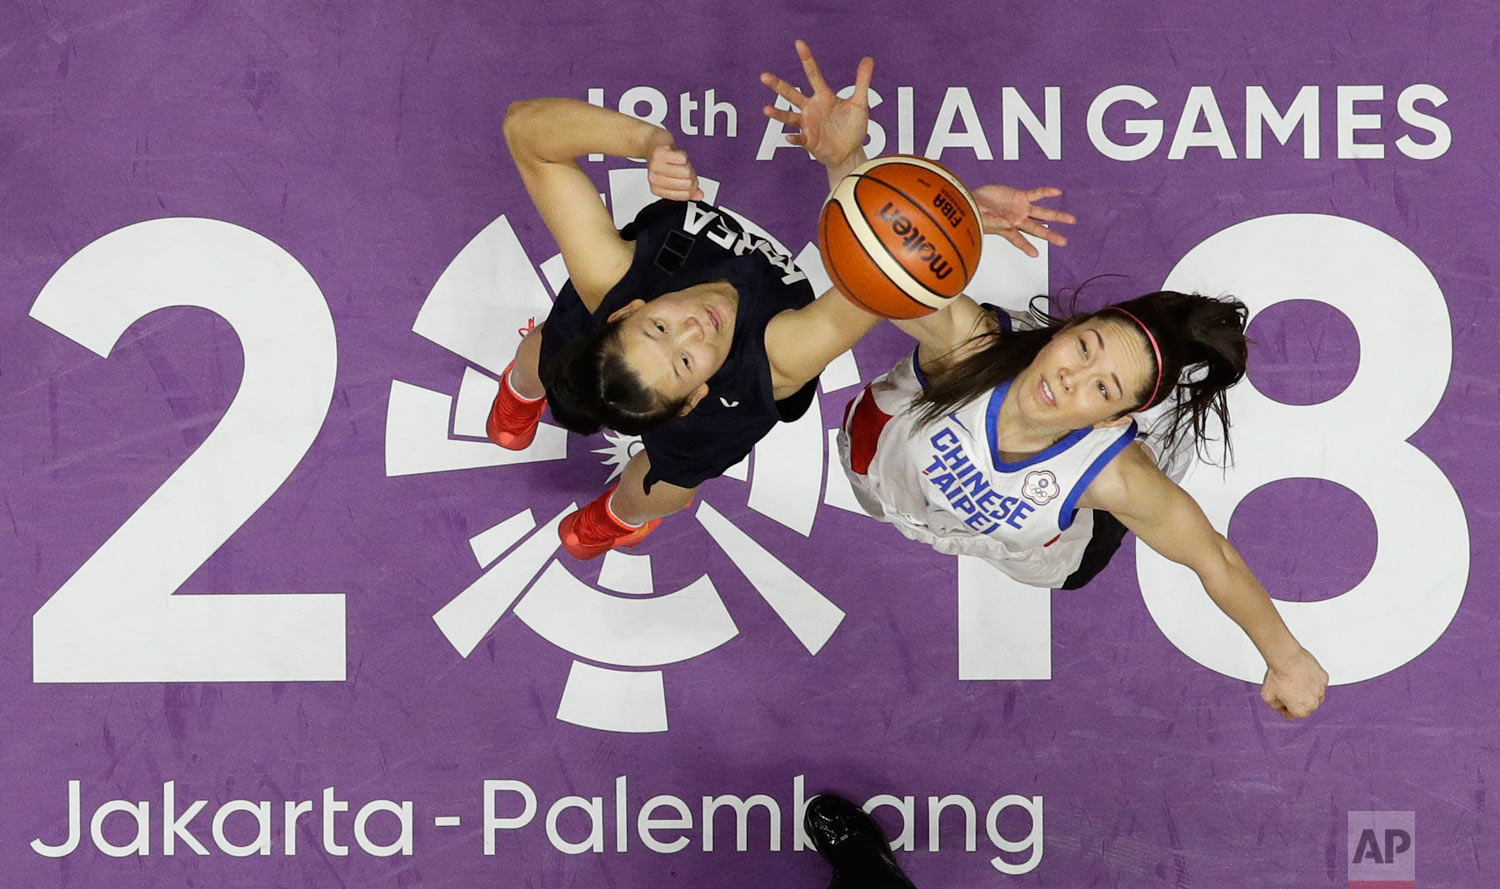 In this Friday, Aug. 17, 2018, photo, combined Koreas Ro Suk Yong, left, and Taiwan's Hsile Bao jump for ball possession during their women's basketball match at the 18th Asian Games in Jakarta, Indonesia. (AP Photo/Aaron Favila)